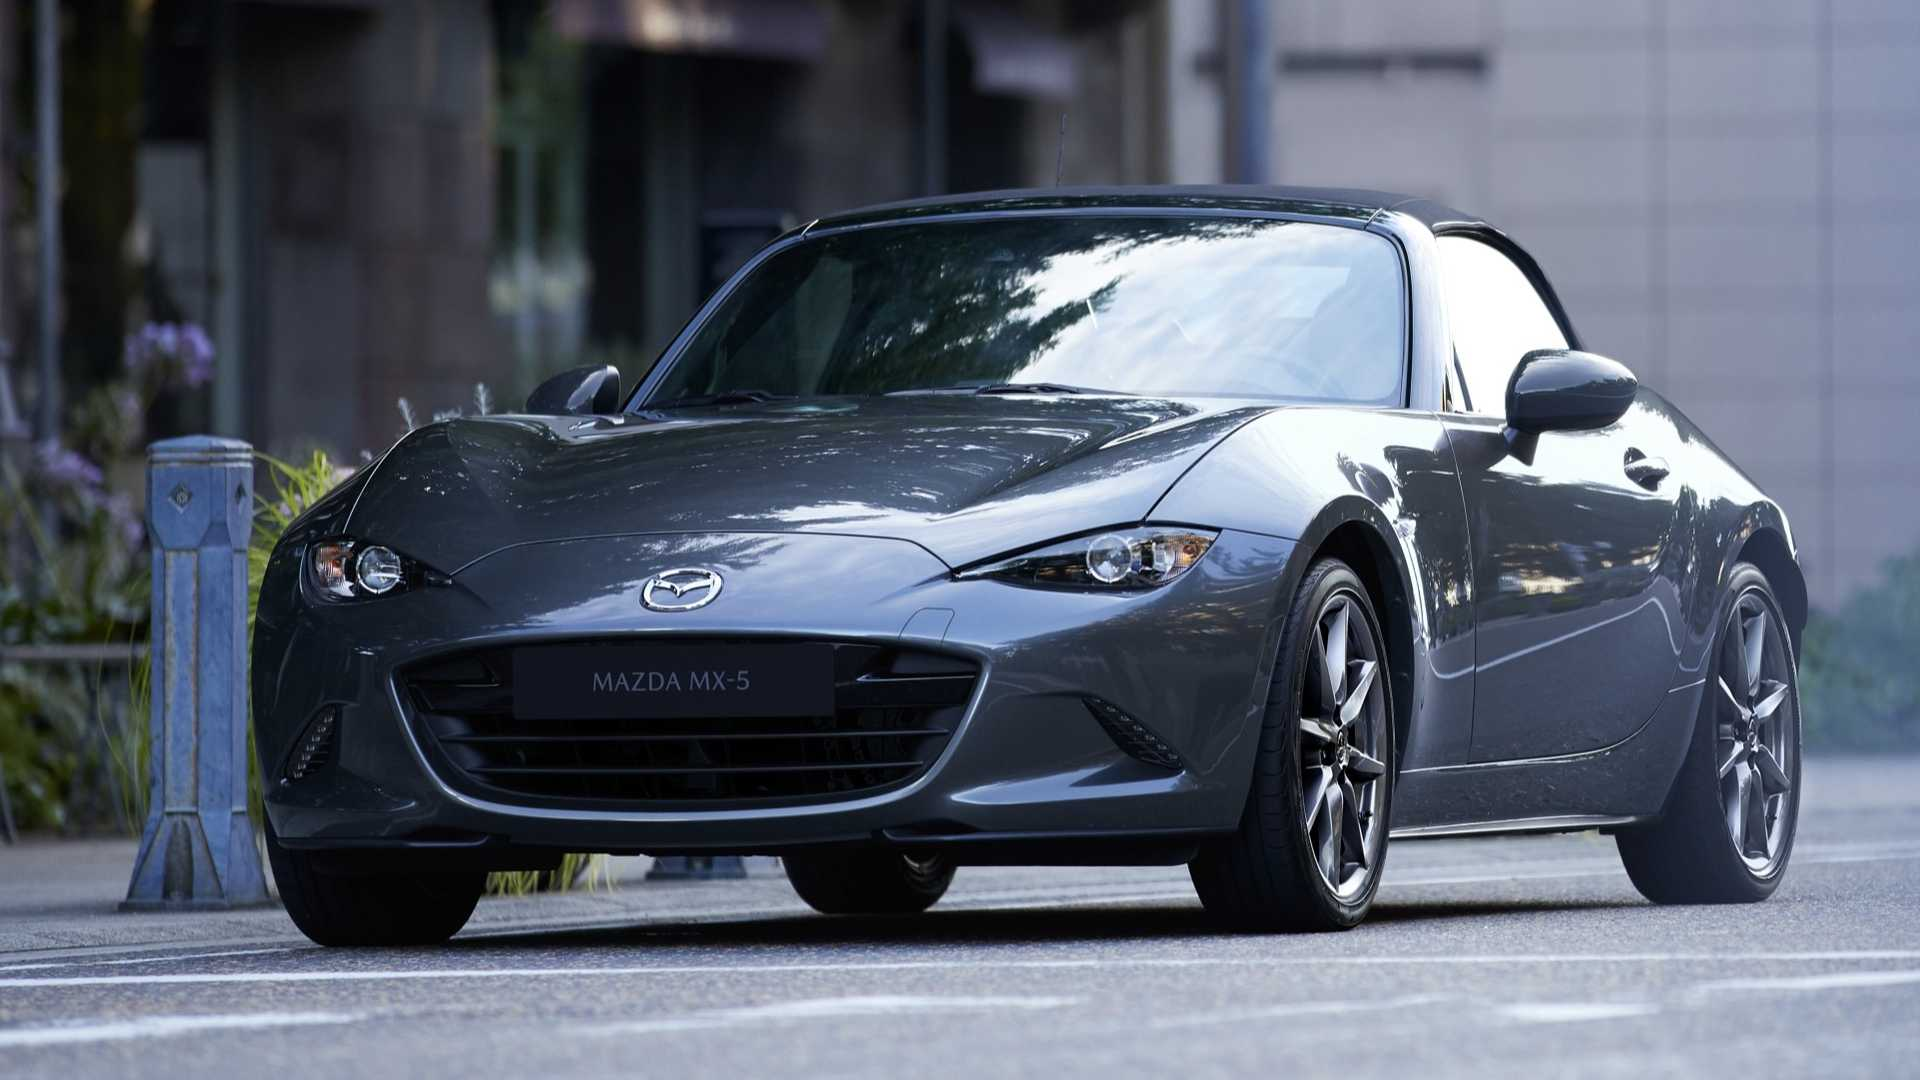 2020 Mazda MX-5 Redesign and Review